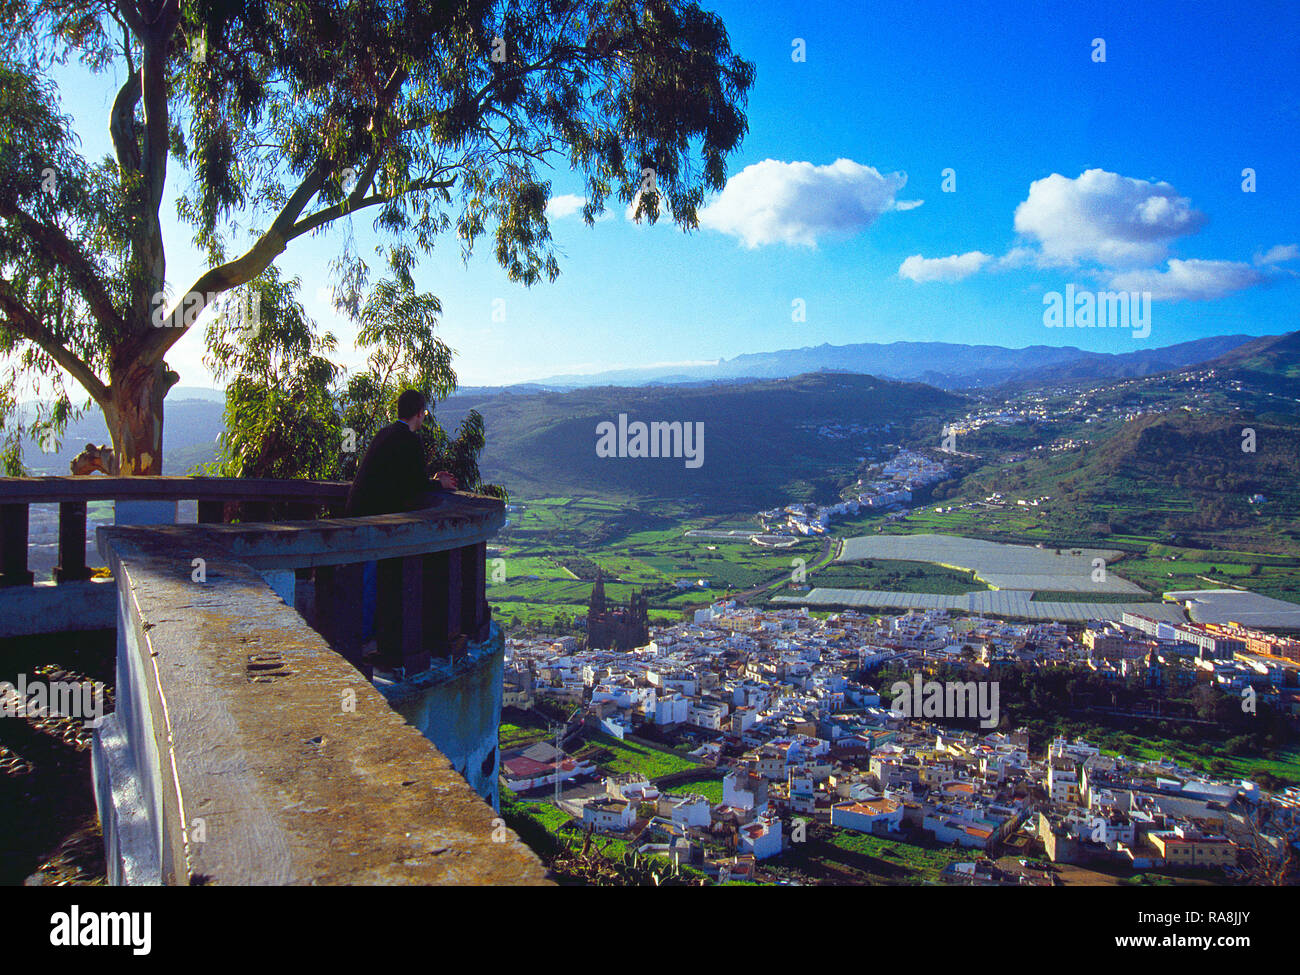 Viewpoint over the town. Arucas, Gran Canaria island, Canary Islands, Spain. - Stock Image